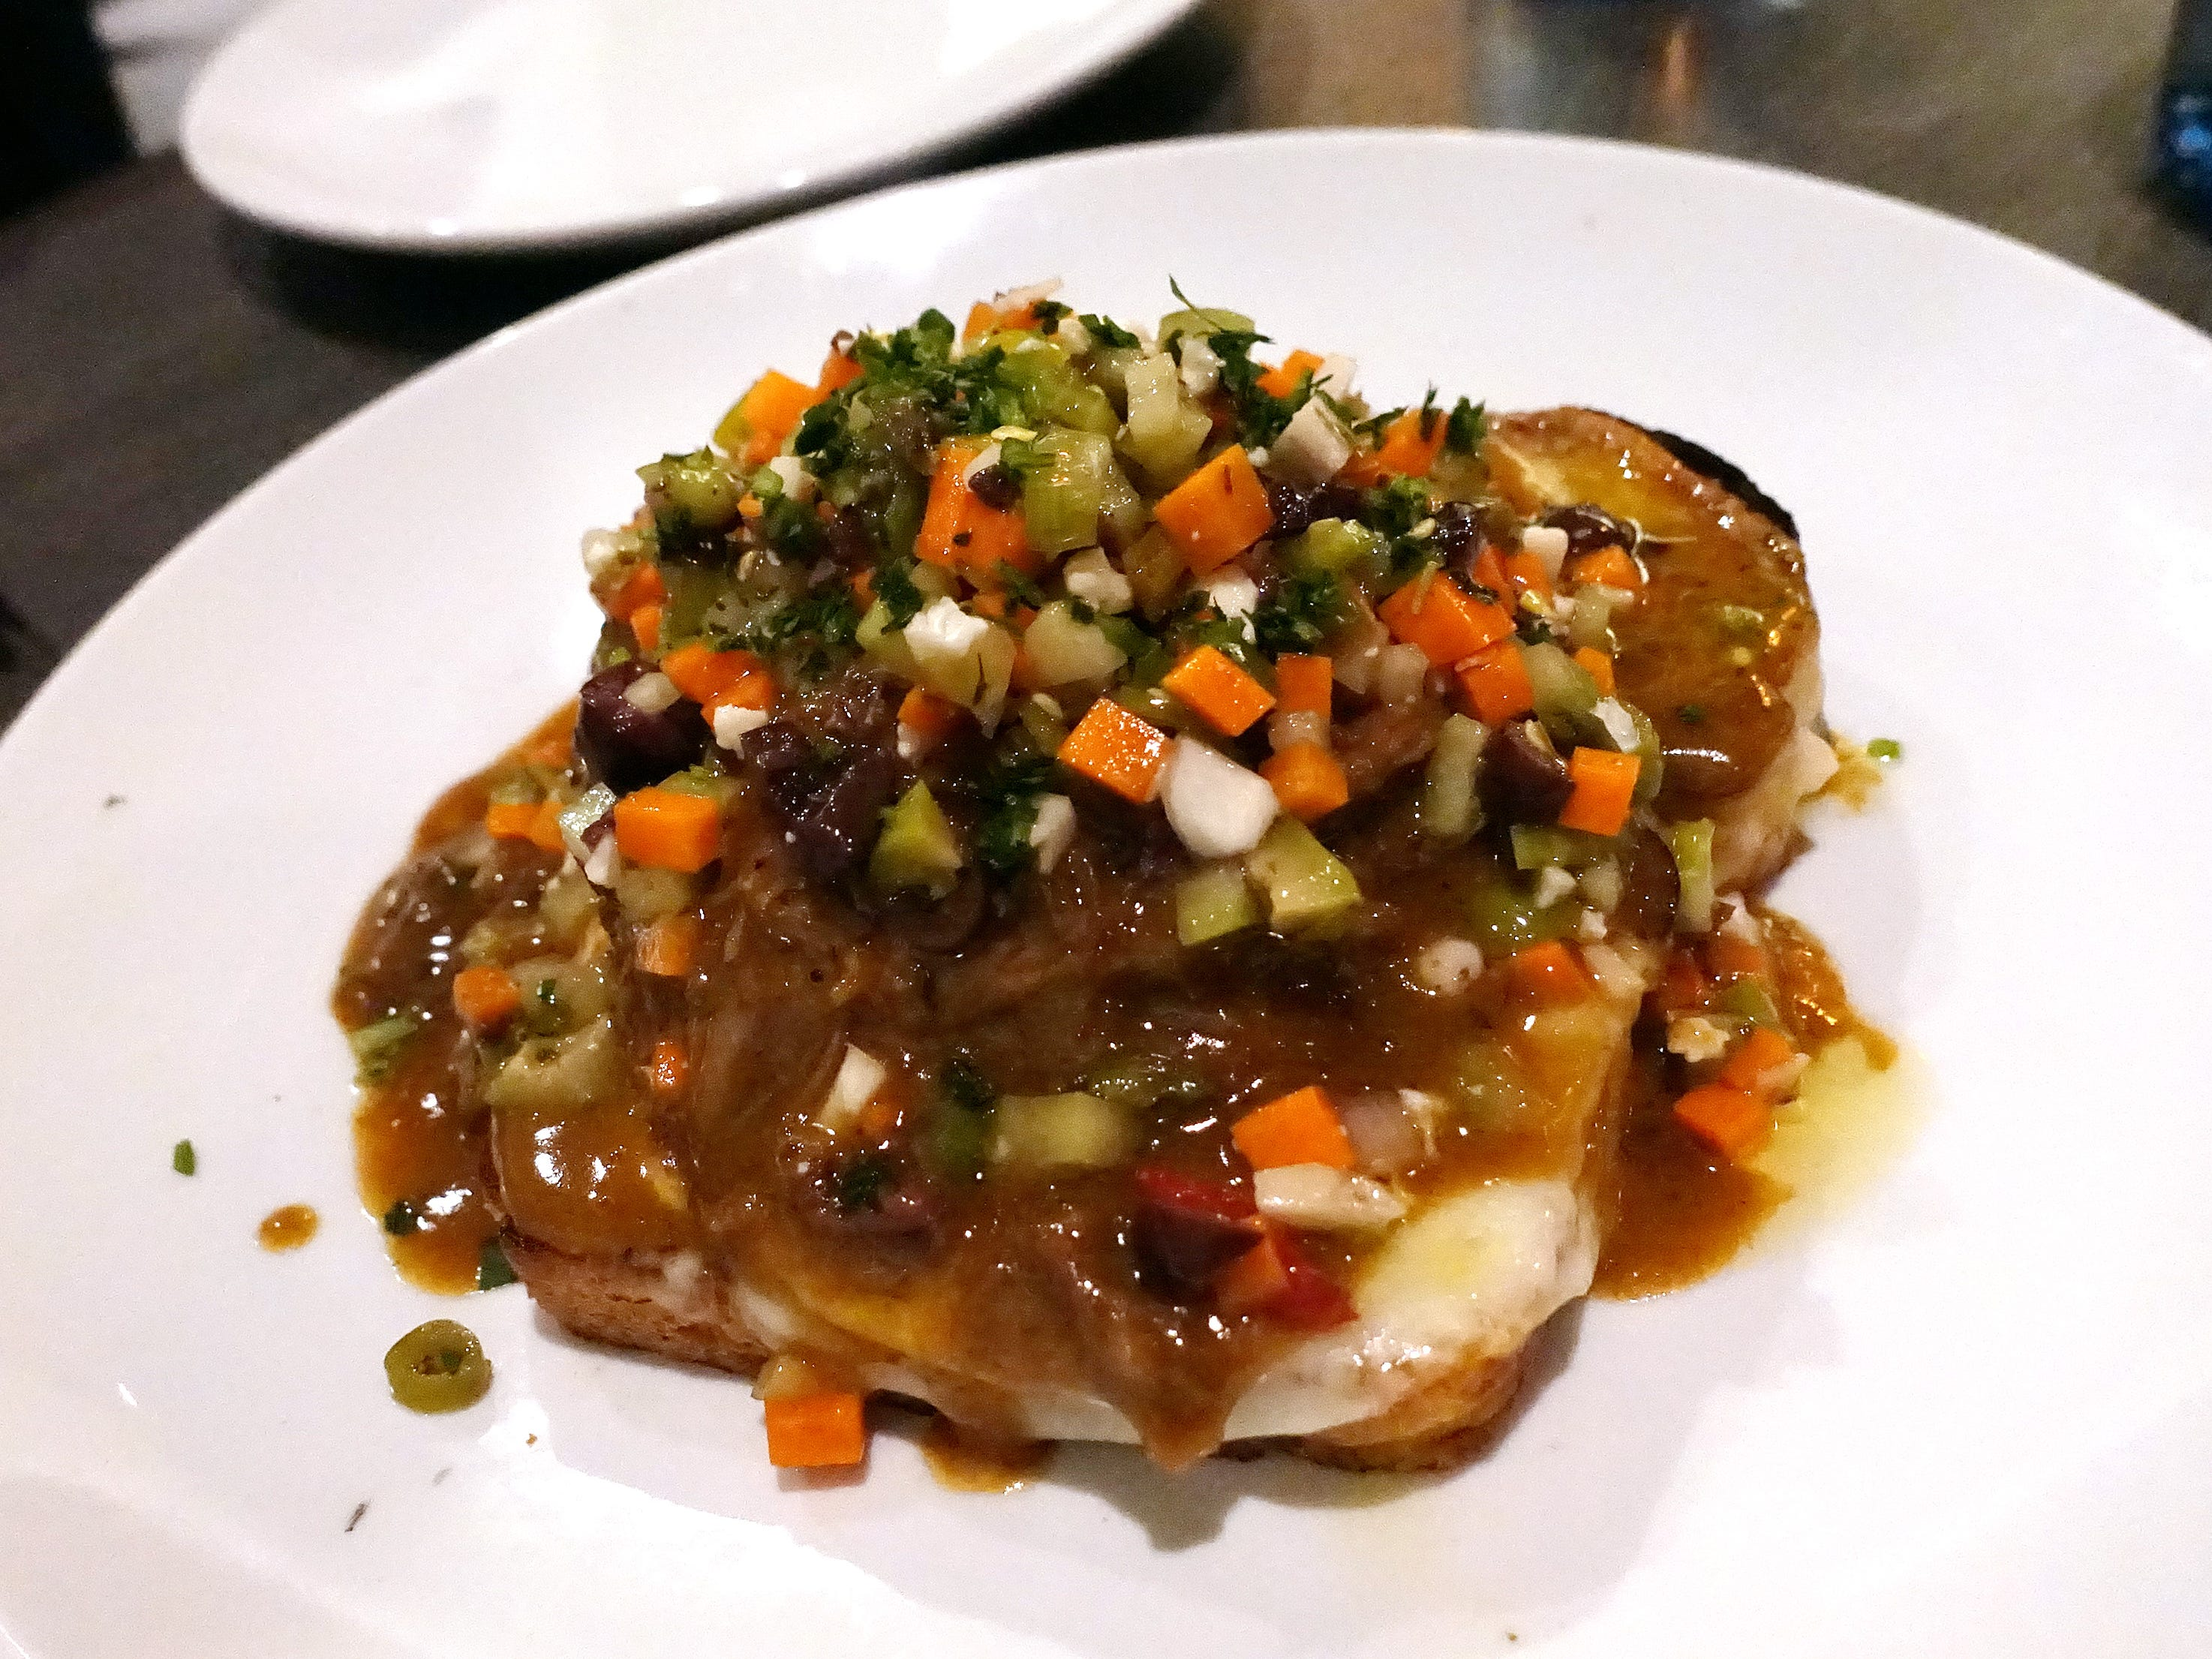 Italian beef with braised oxtail, smoked provolone, Chicago-style giardiniera and brioche at Hush Public House in Scottsdale.